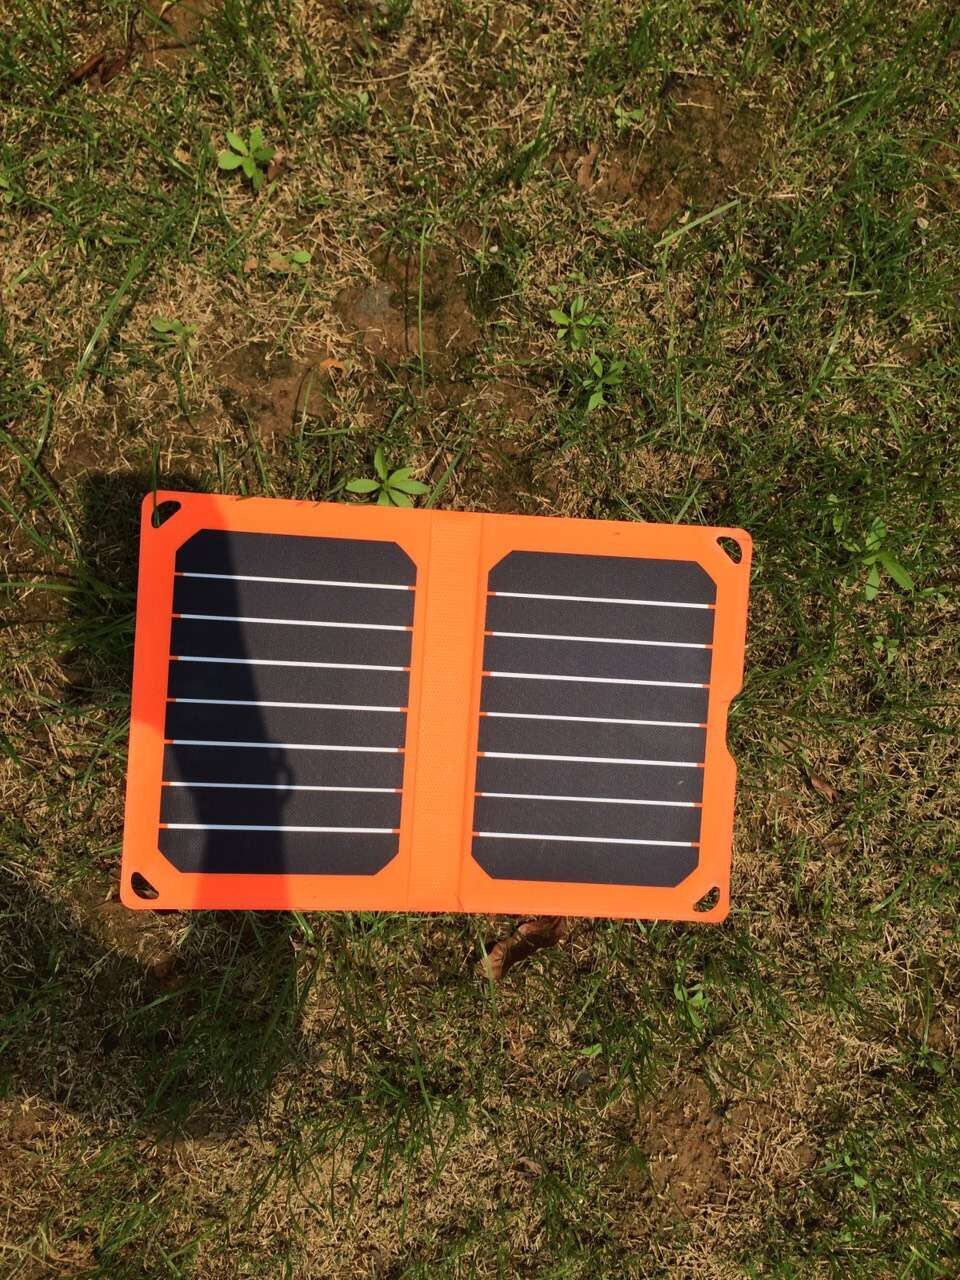 CLPSC-1603 PORTABLE SOLAR CHARGER